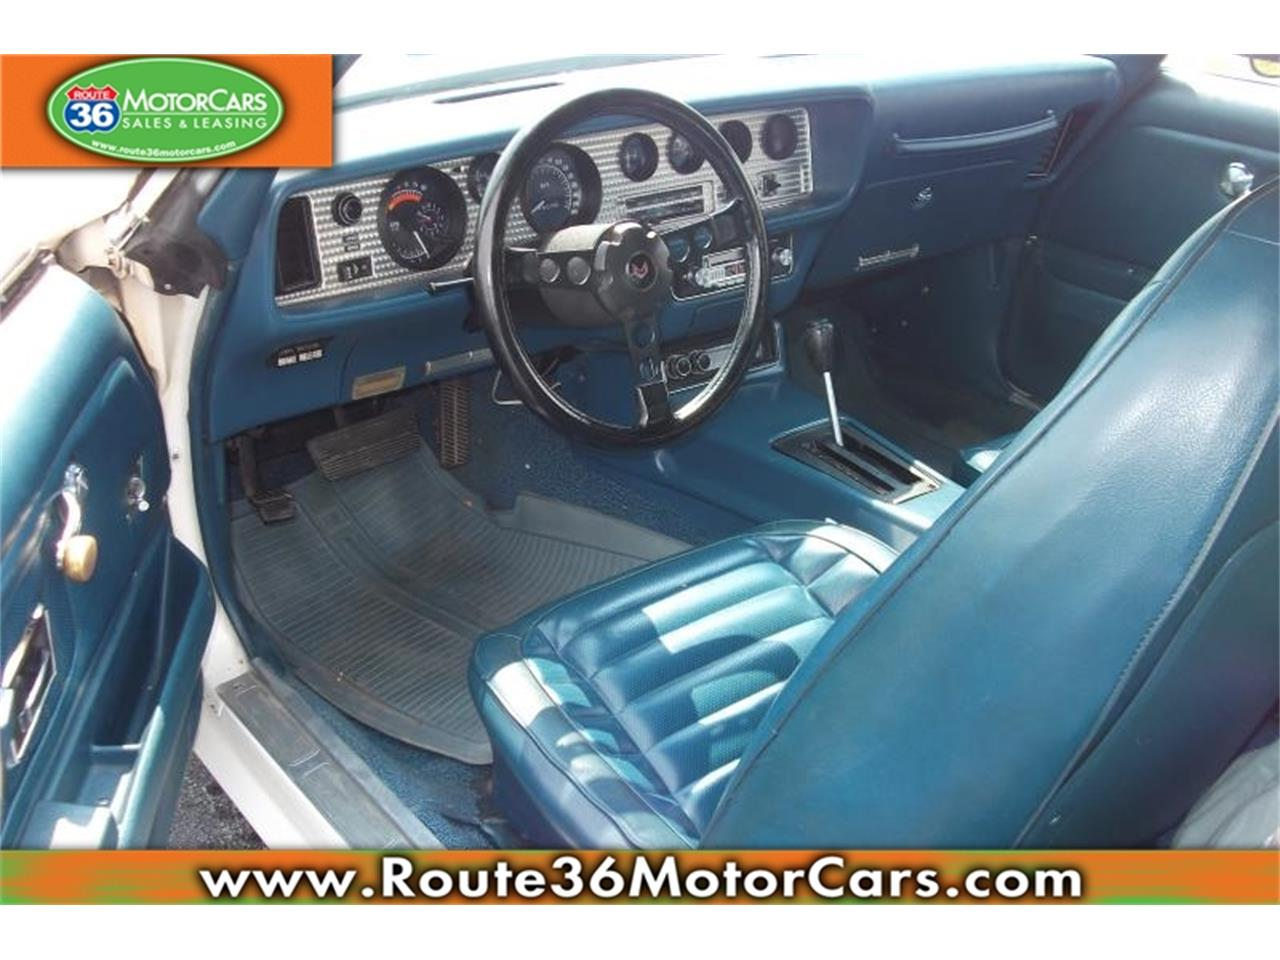 Large Picture of '72 Pontiac Firebird located in Ohio - $54,975.00 Offered by Route 36 Motor Cars - IKH6